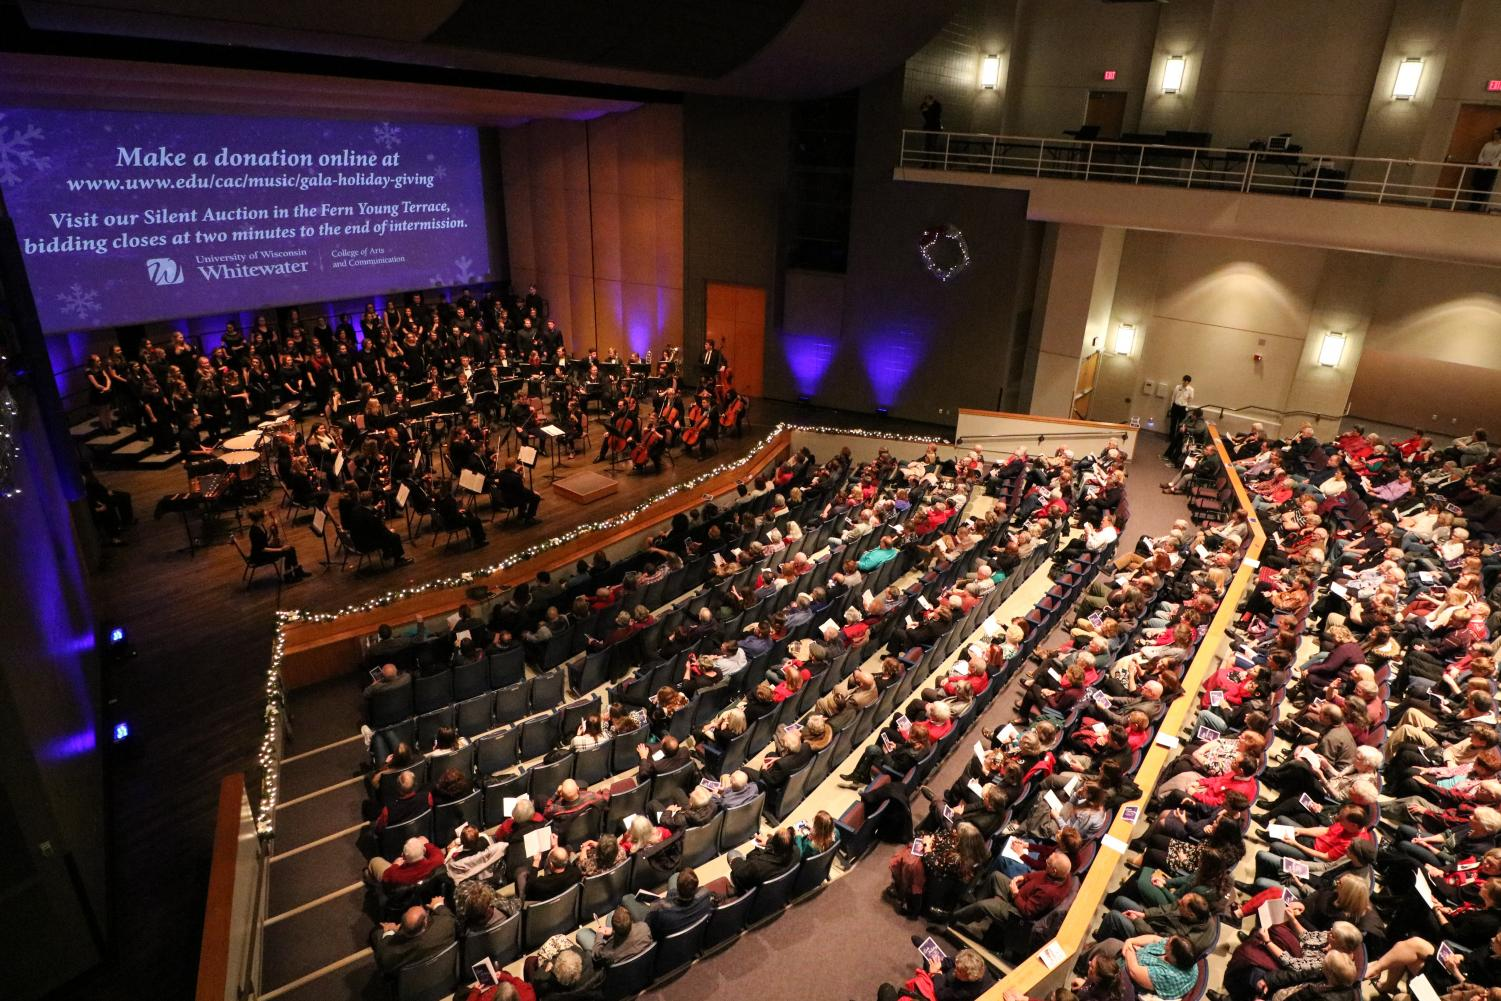 The University of Wisconsin-Whitewater held its Annual Holiday Gala and Concert on Saturday, Dec. 7. The event, held in Young Auditorium, is the premiere concert for the seasonal music offerings.